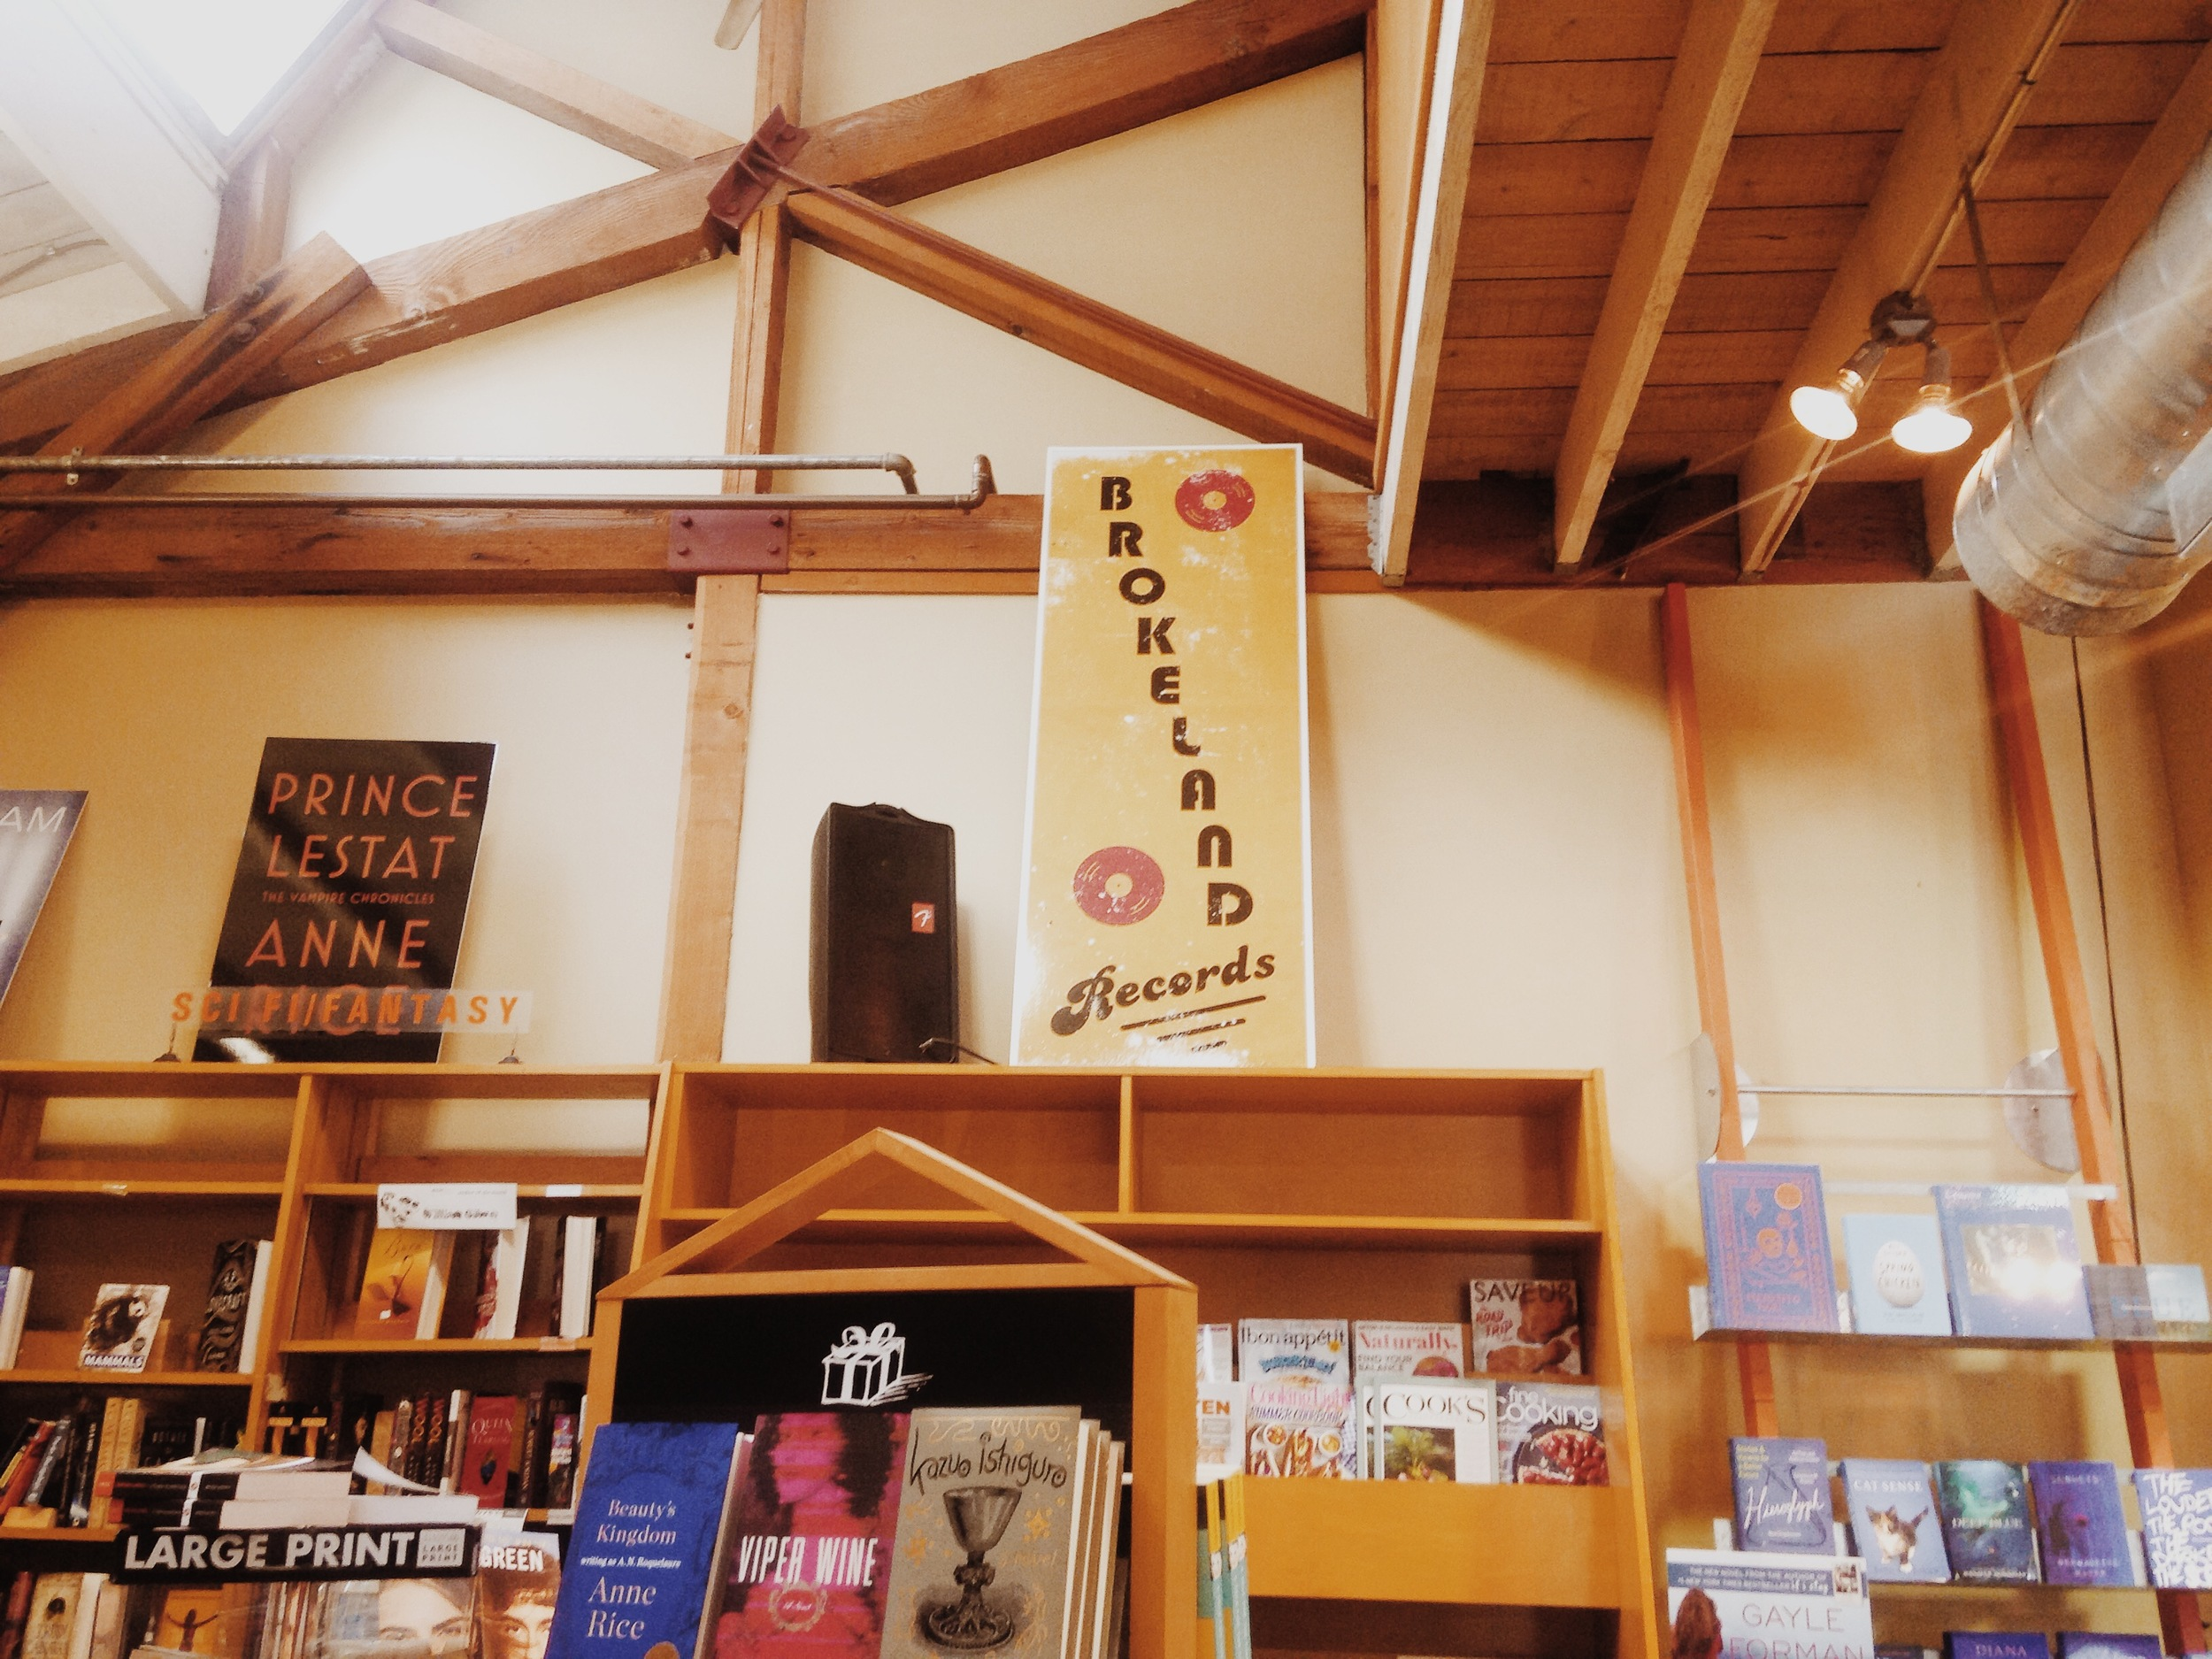 Brokeland Records (Telegraph Avenue, by Michael Chabon)